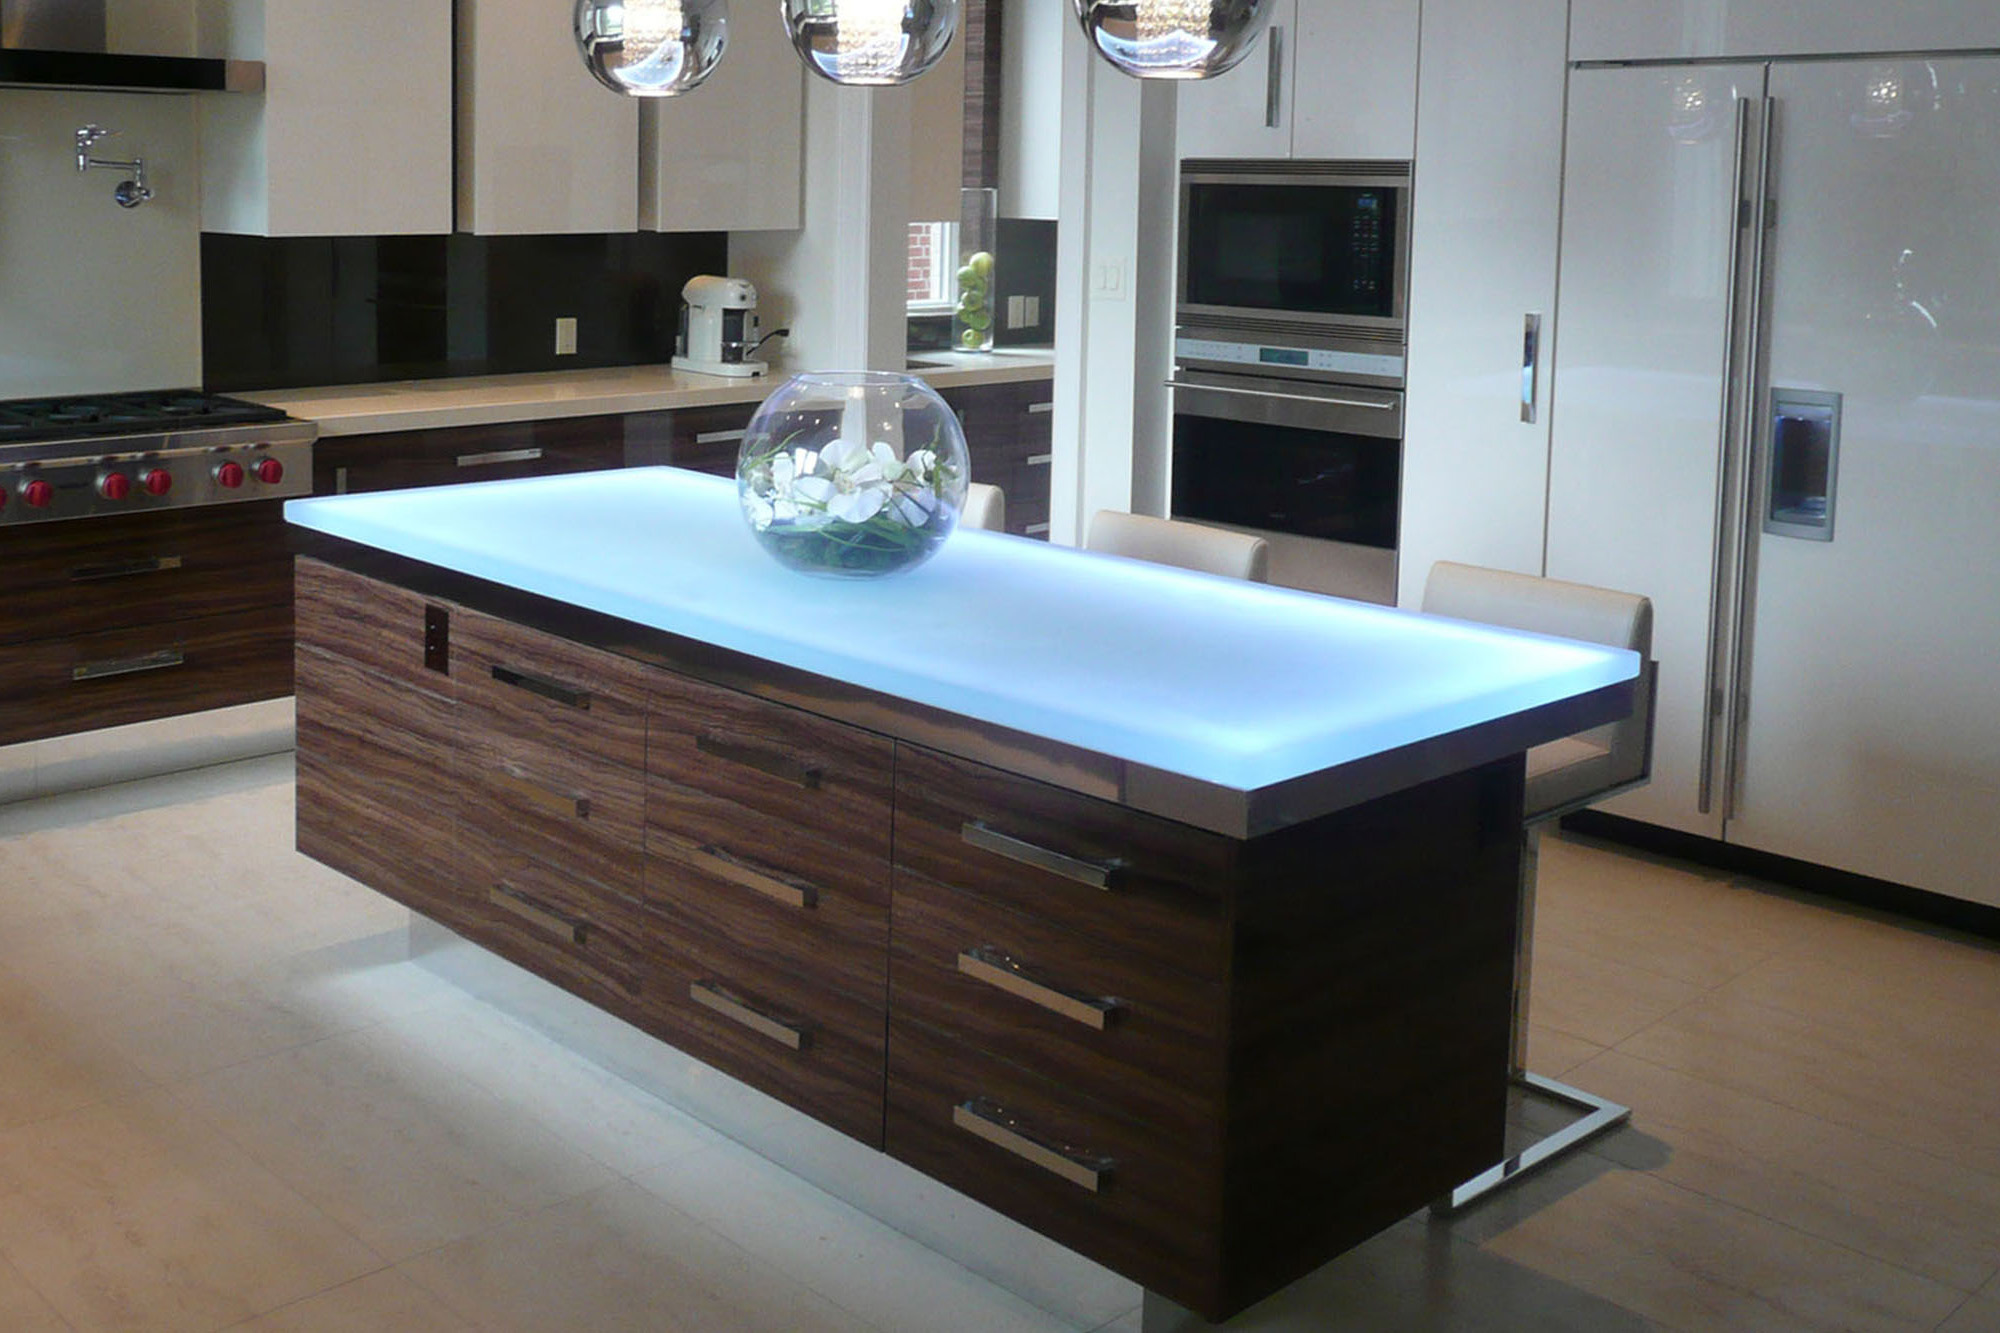 add a unique touch with custom glass table tops cgd On ultraglas kitchen countertops